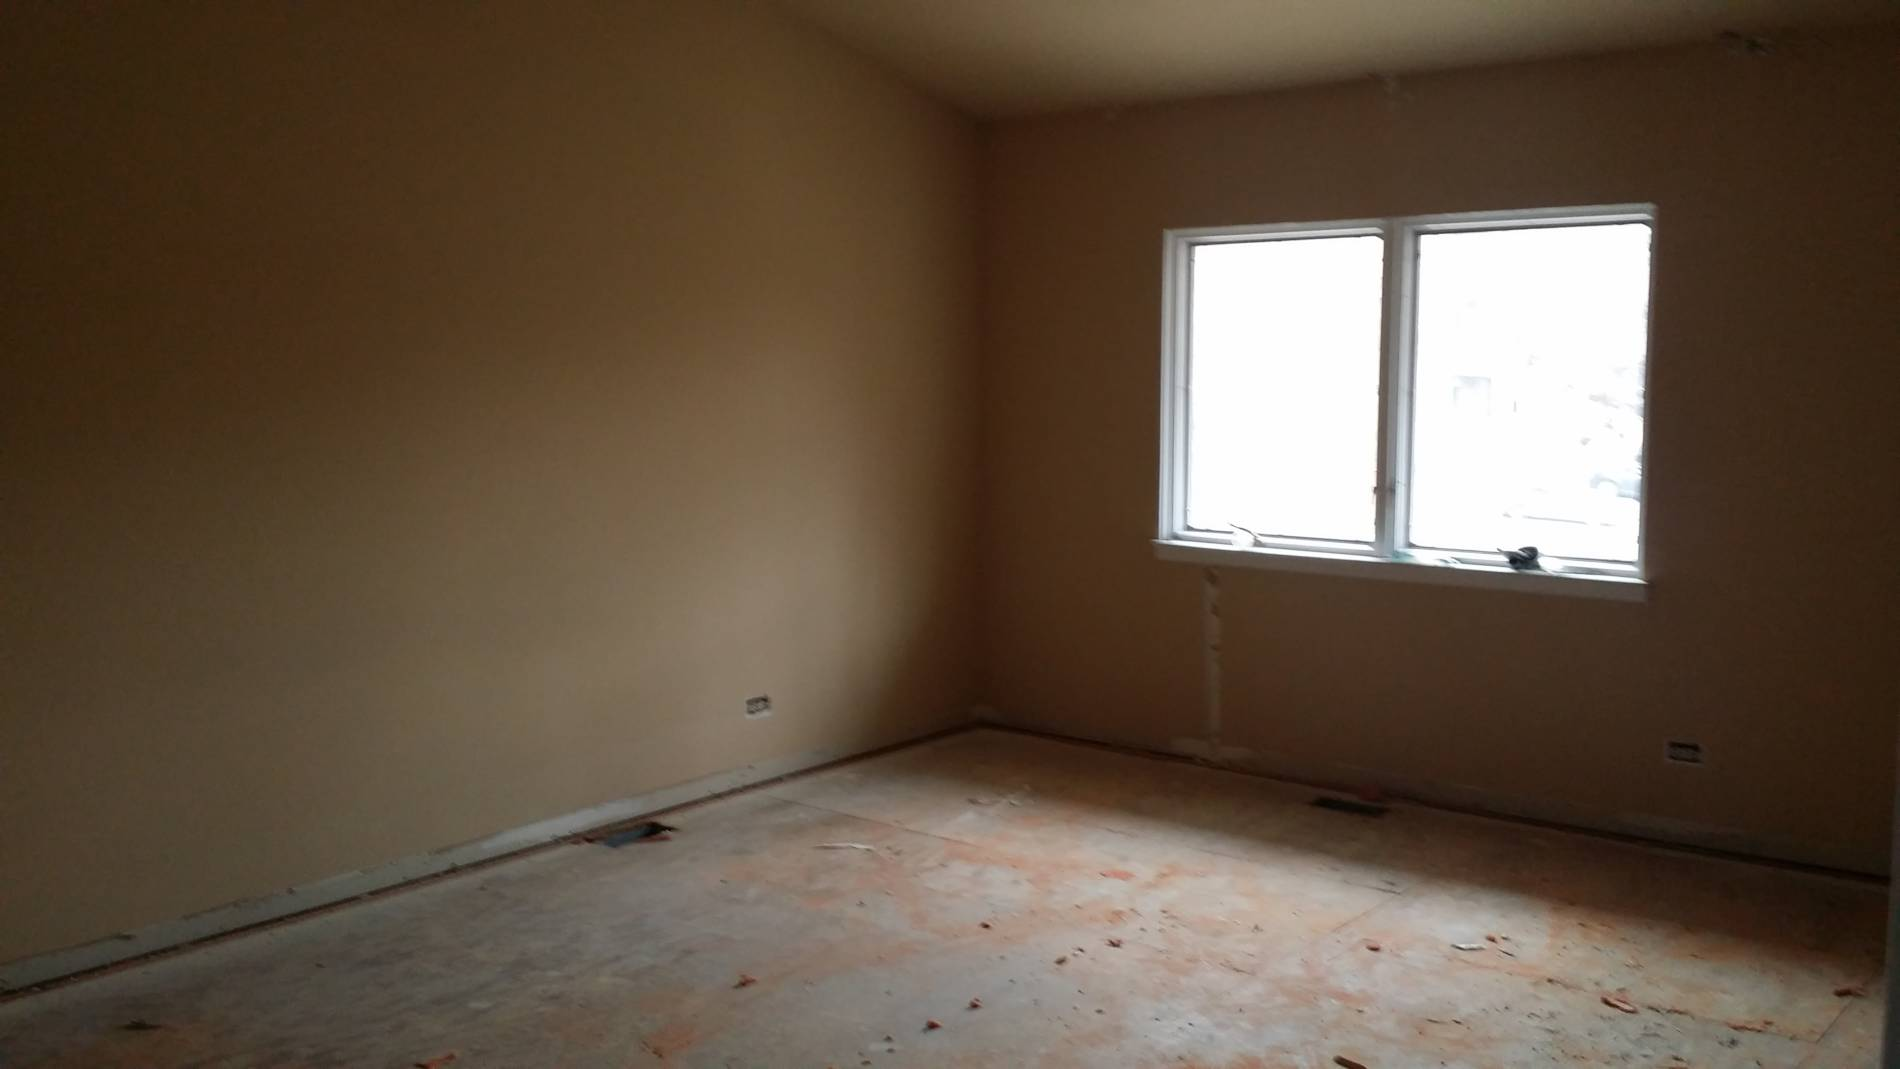 1-23-17 8109 S Indiana Master Bedroom Before